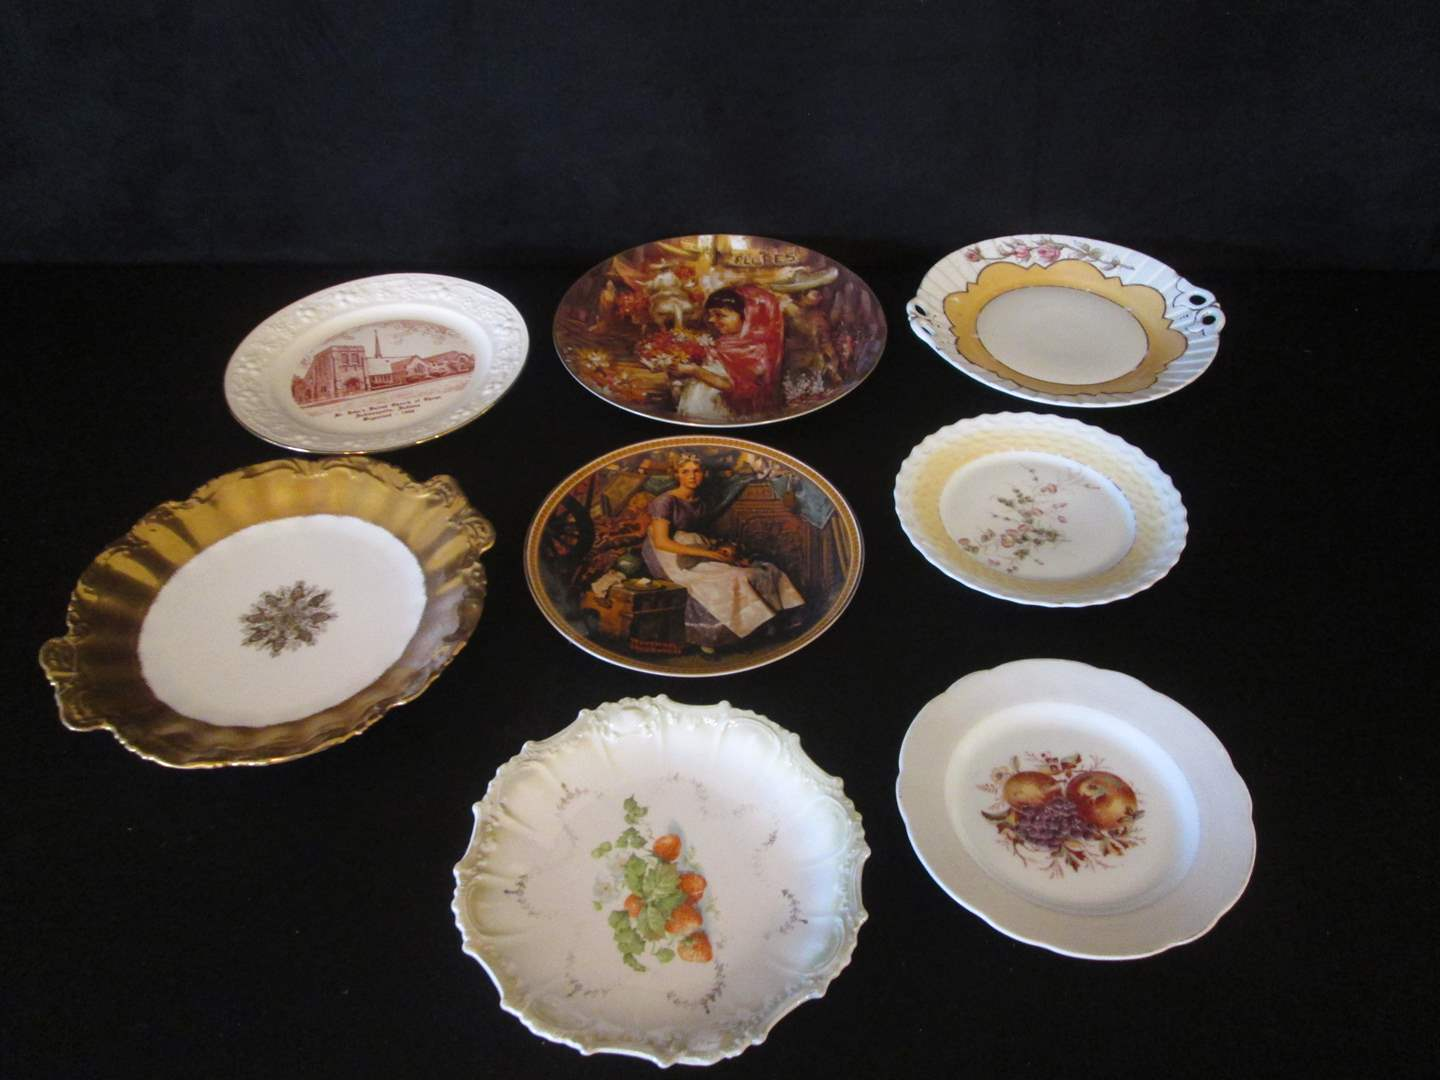 Lot # 185 - Collectible Plates + Gold-Trim Cake Plate (main image)